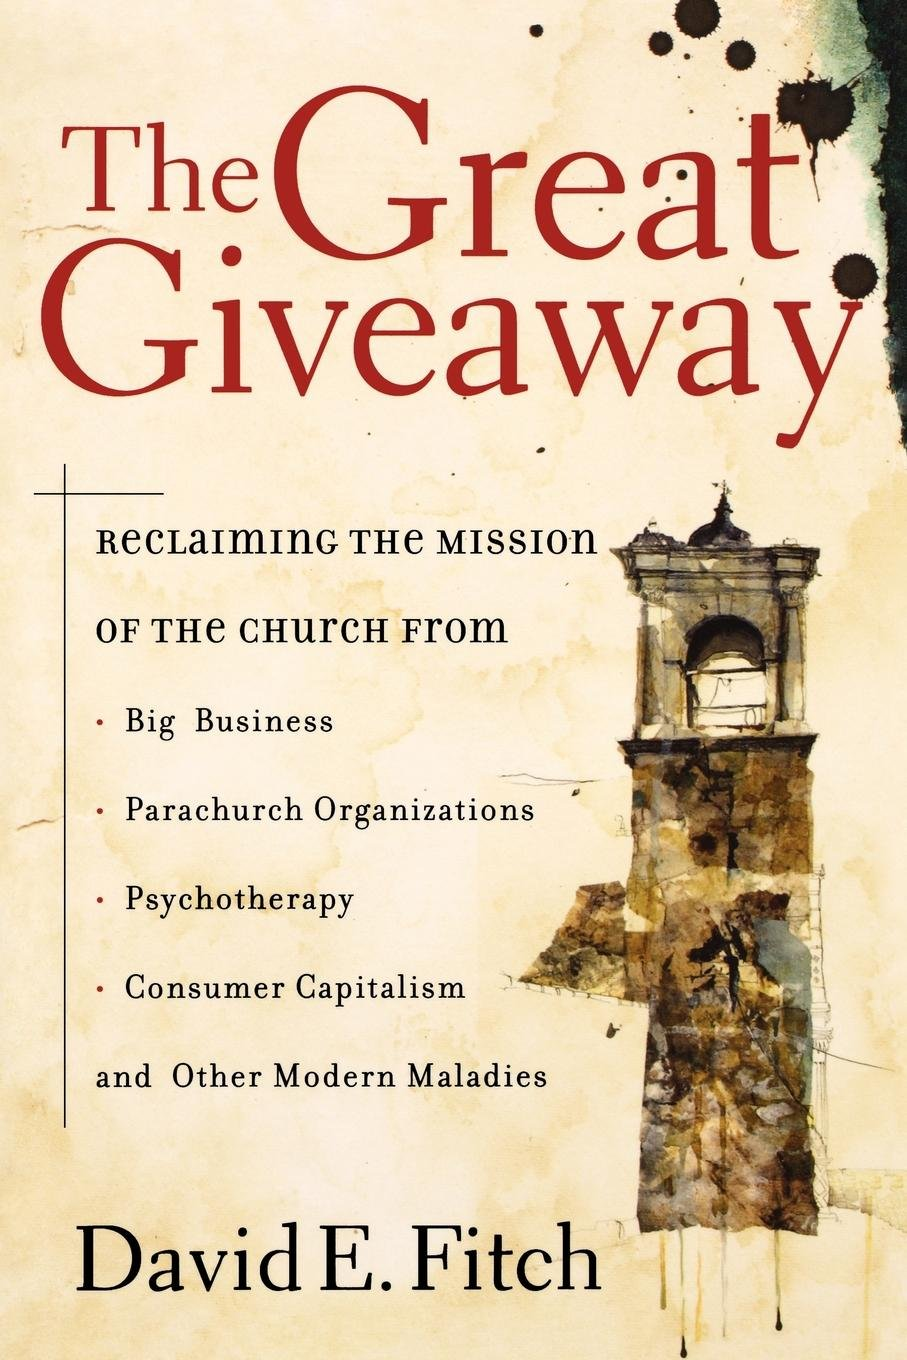 Download The Great Giveaway: Reclaiming the Mission of the Church from Big Business, Parachurch Organizations, Psychotherapy, Consumer Capitalism, and Other Modern Maladies pdf